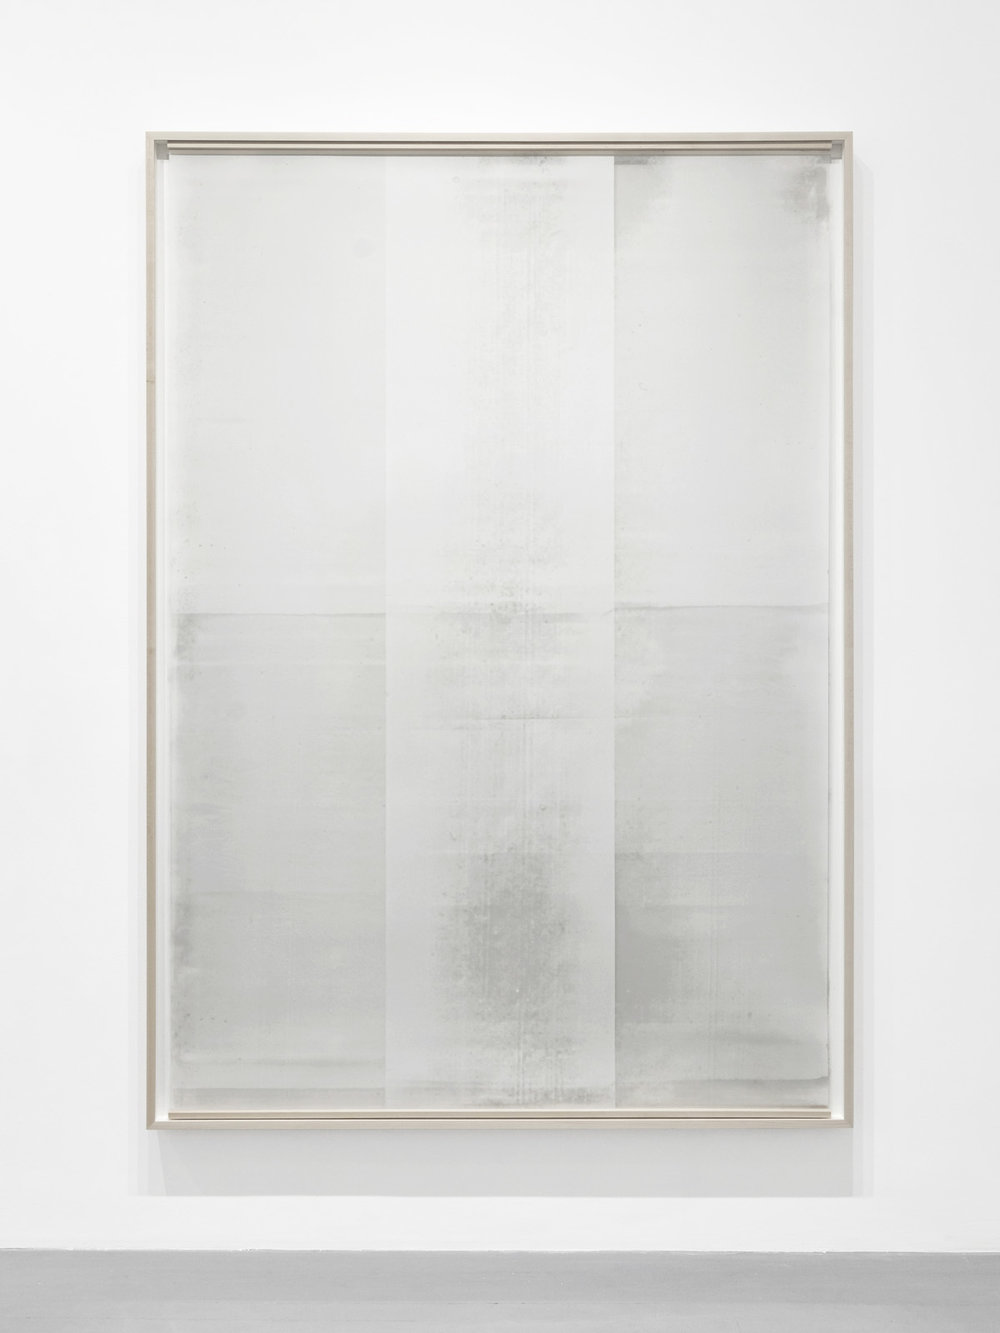 Untitled  (from the series  An Accurate Silence ), 2017, Oil based paint on clouded mylar suspended in front of acrylic on cotton paper, 71 x 51 inches